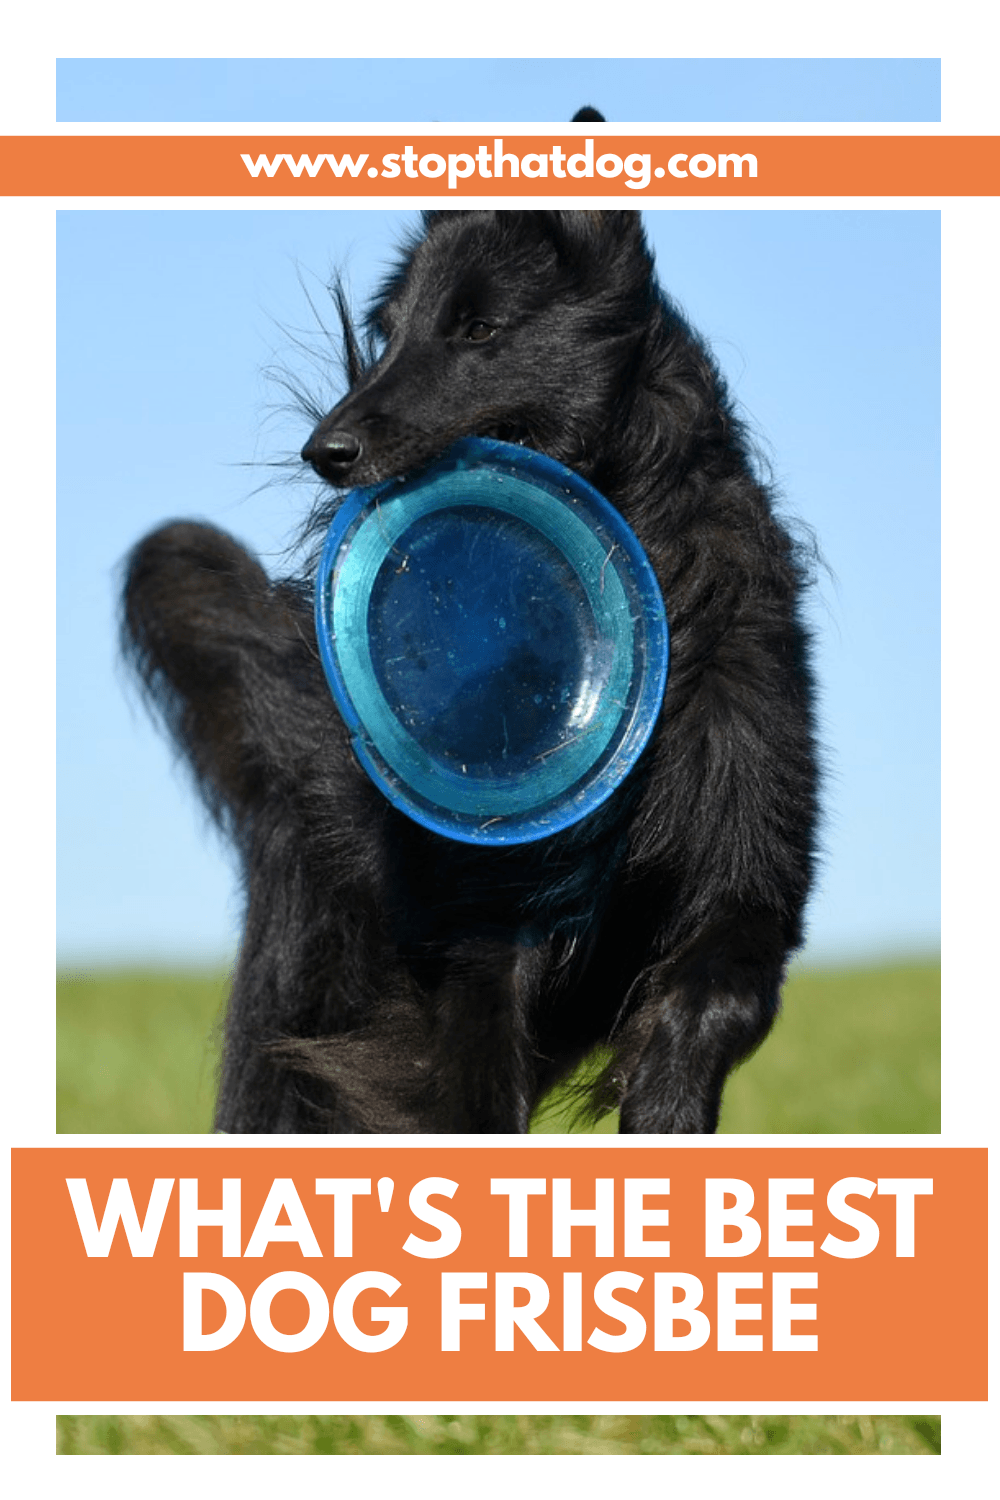 What Are The Best Dog Frisbees In 2020?